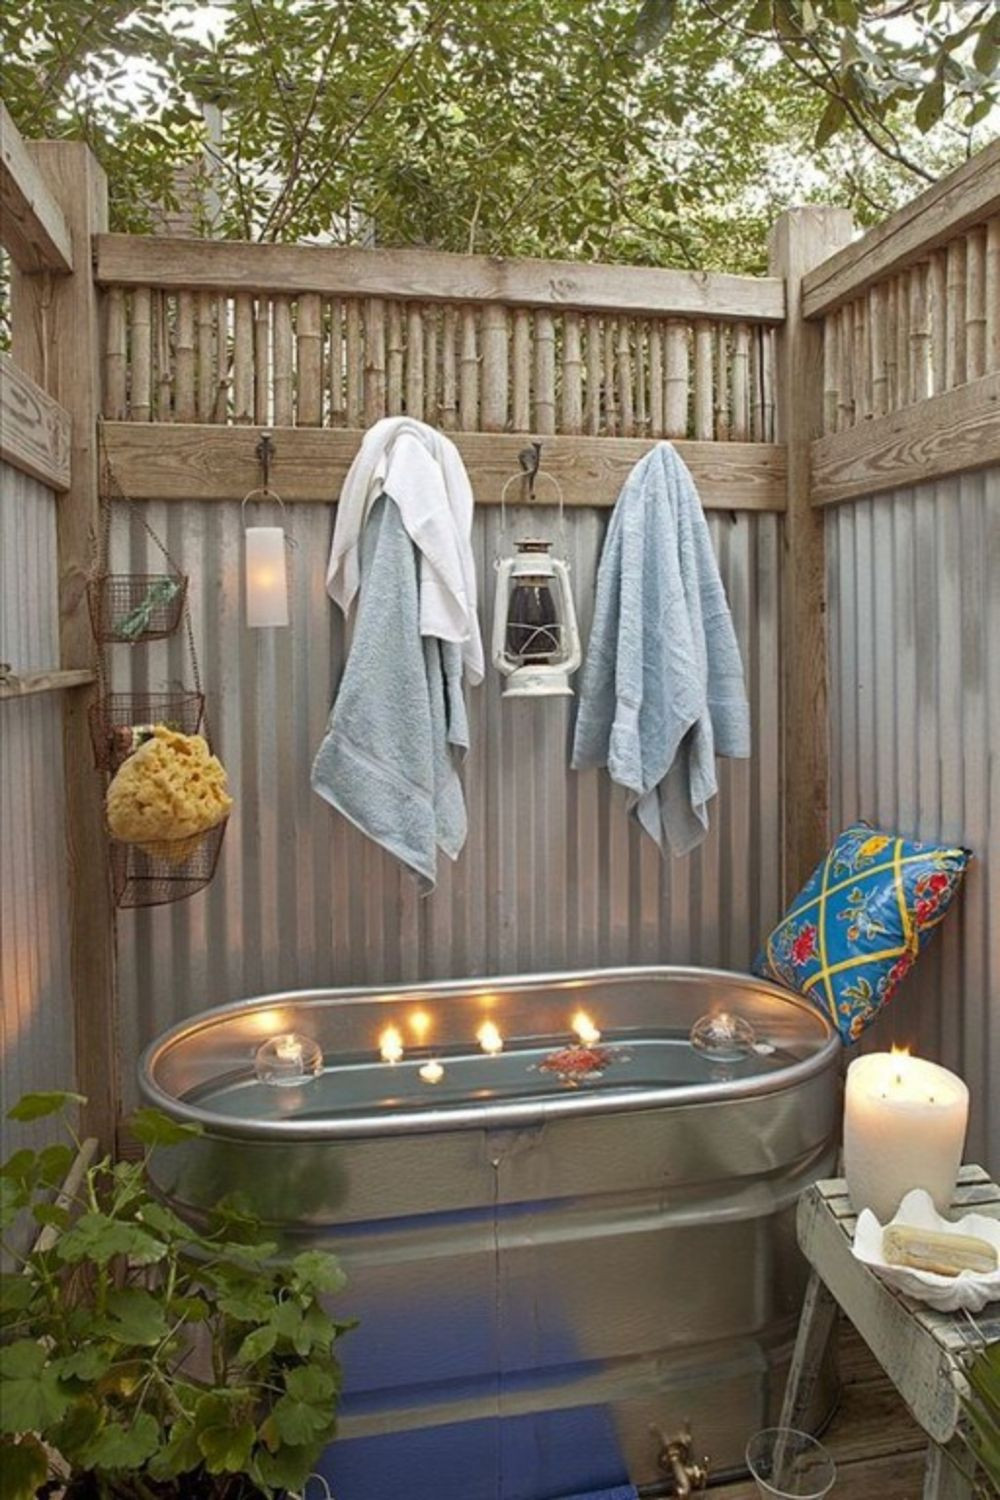 Best ideas about Cheap Fence DIY . Save or Pin Cheap diy privacy fence ideas 47 Wartaku Now.